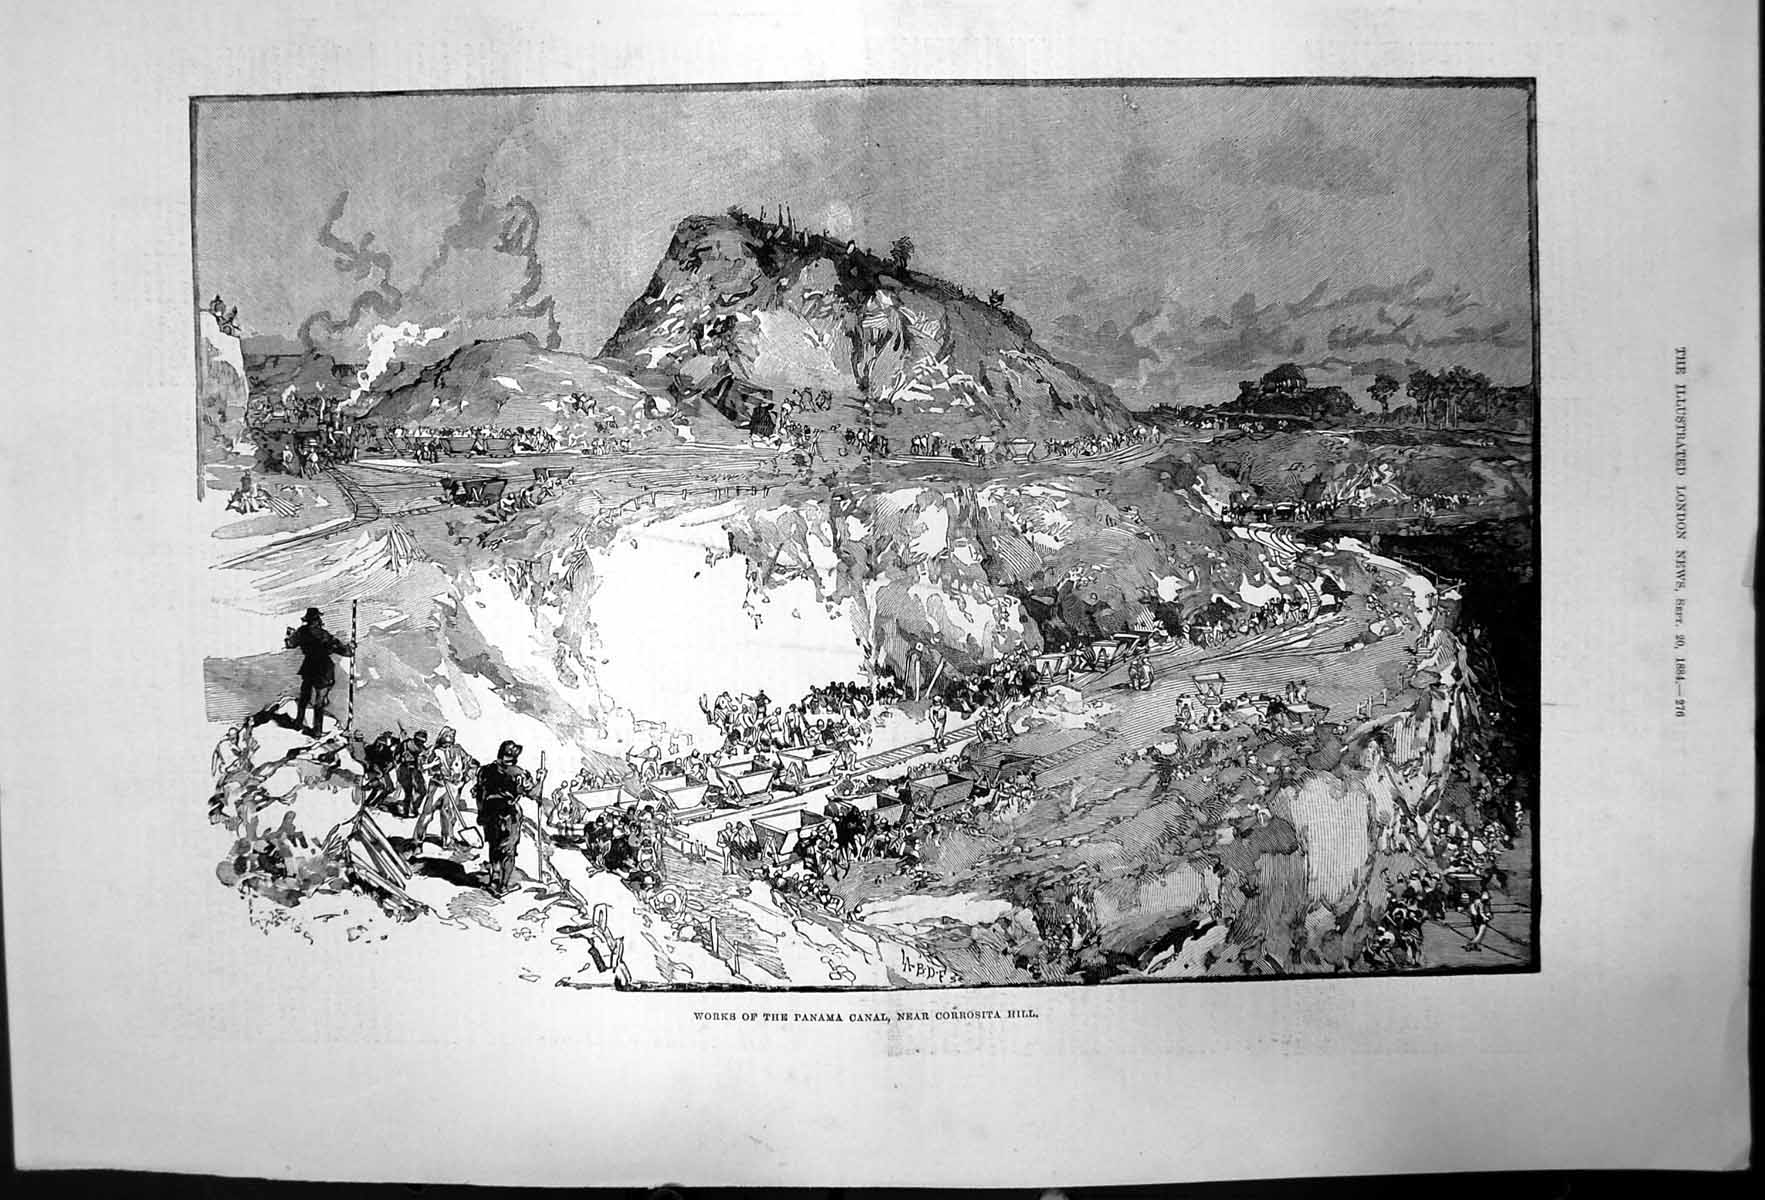 Old-Antique-Print-Works-Panama-Canal-Near-Corrosita-Hill-1884-441J731